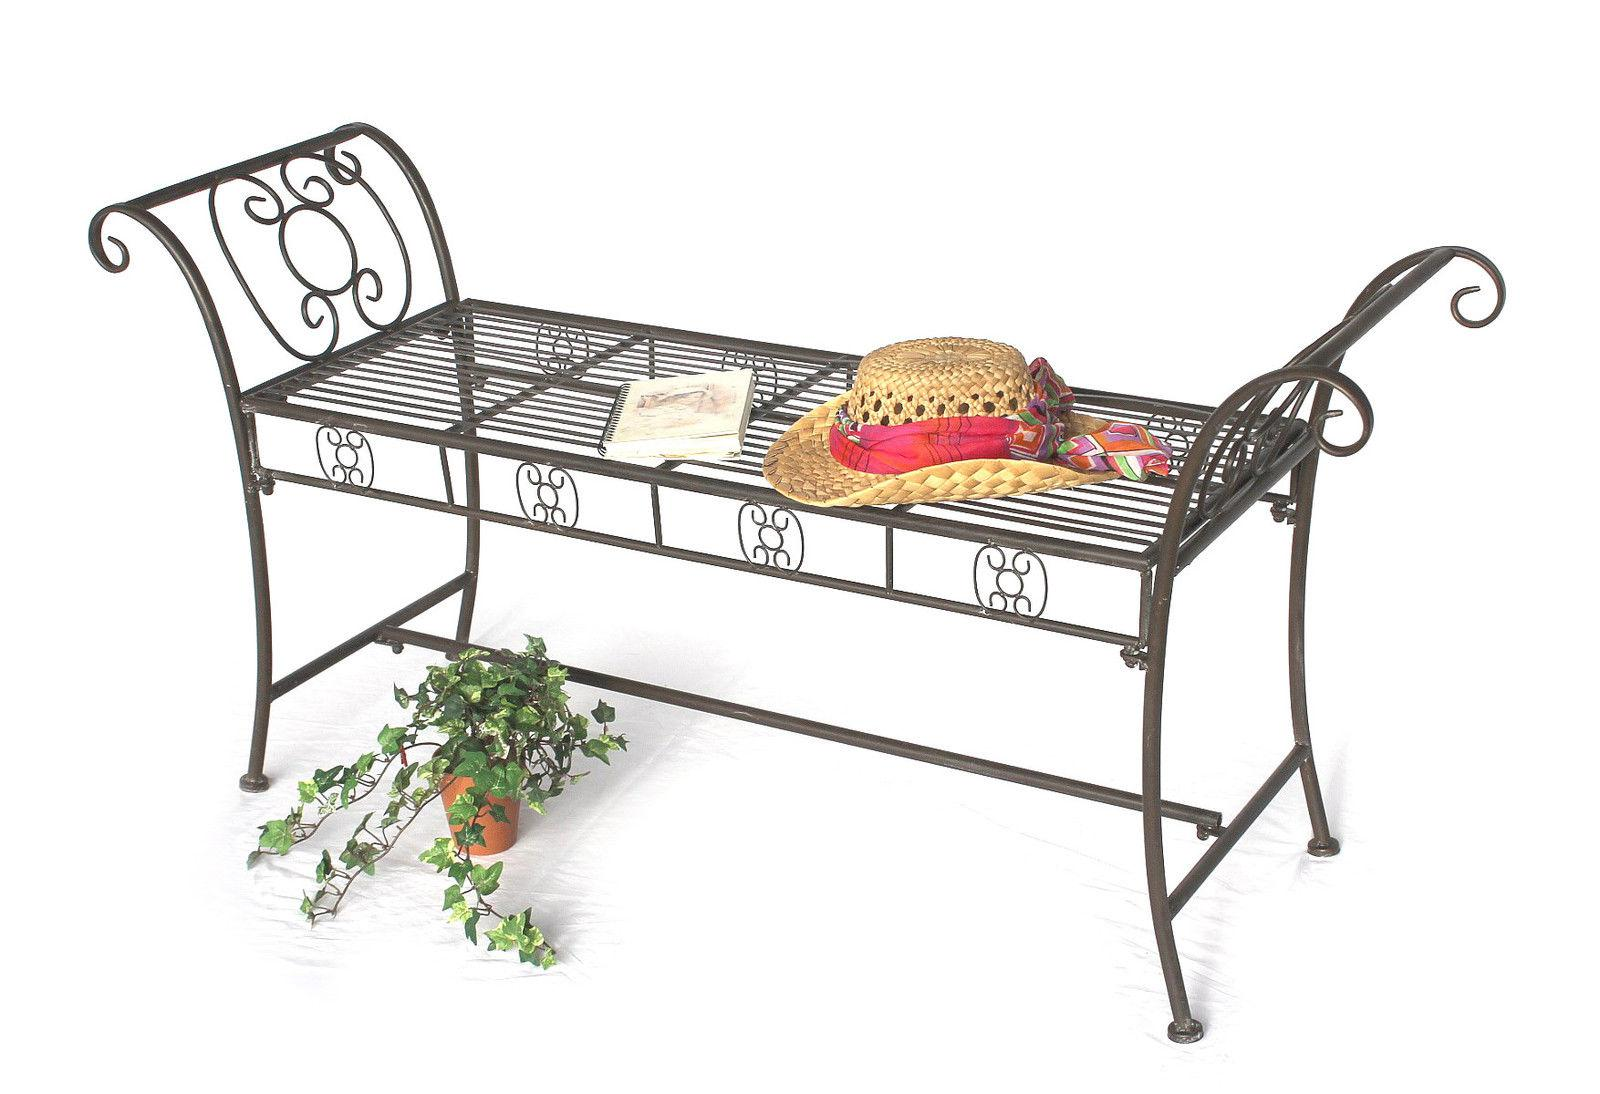 bank dy140491 aus metall gartenbank sitzbank 2 sitzer 138 cm rundbank parkbank ebay. Black Bedroom Furniture Sets. Home Design Ideas